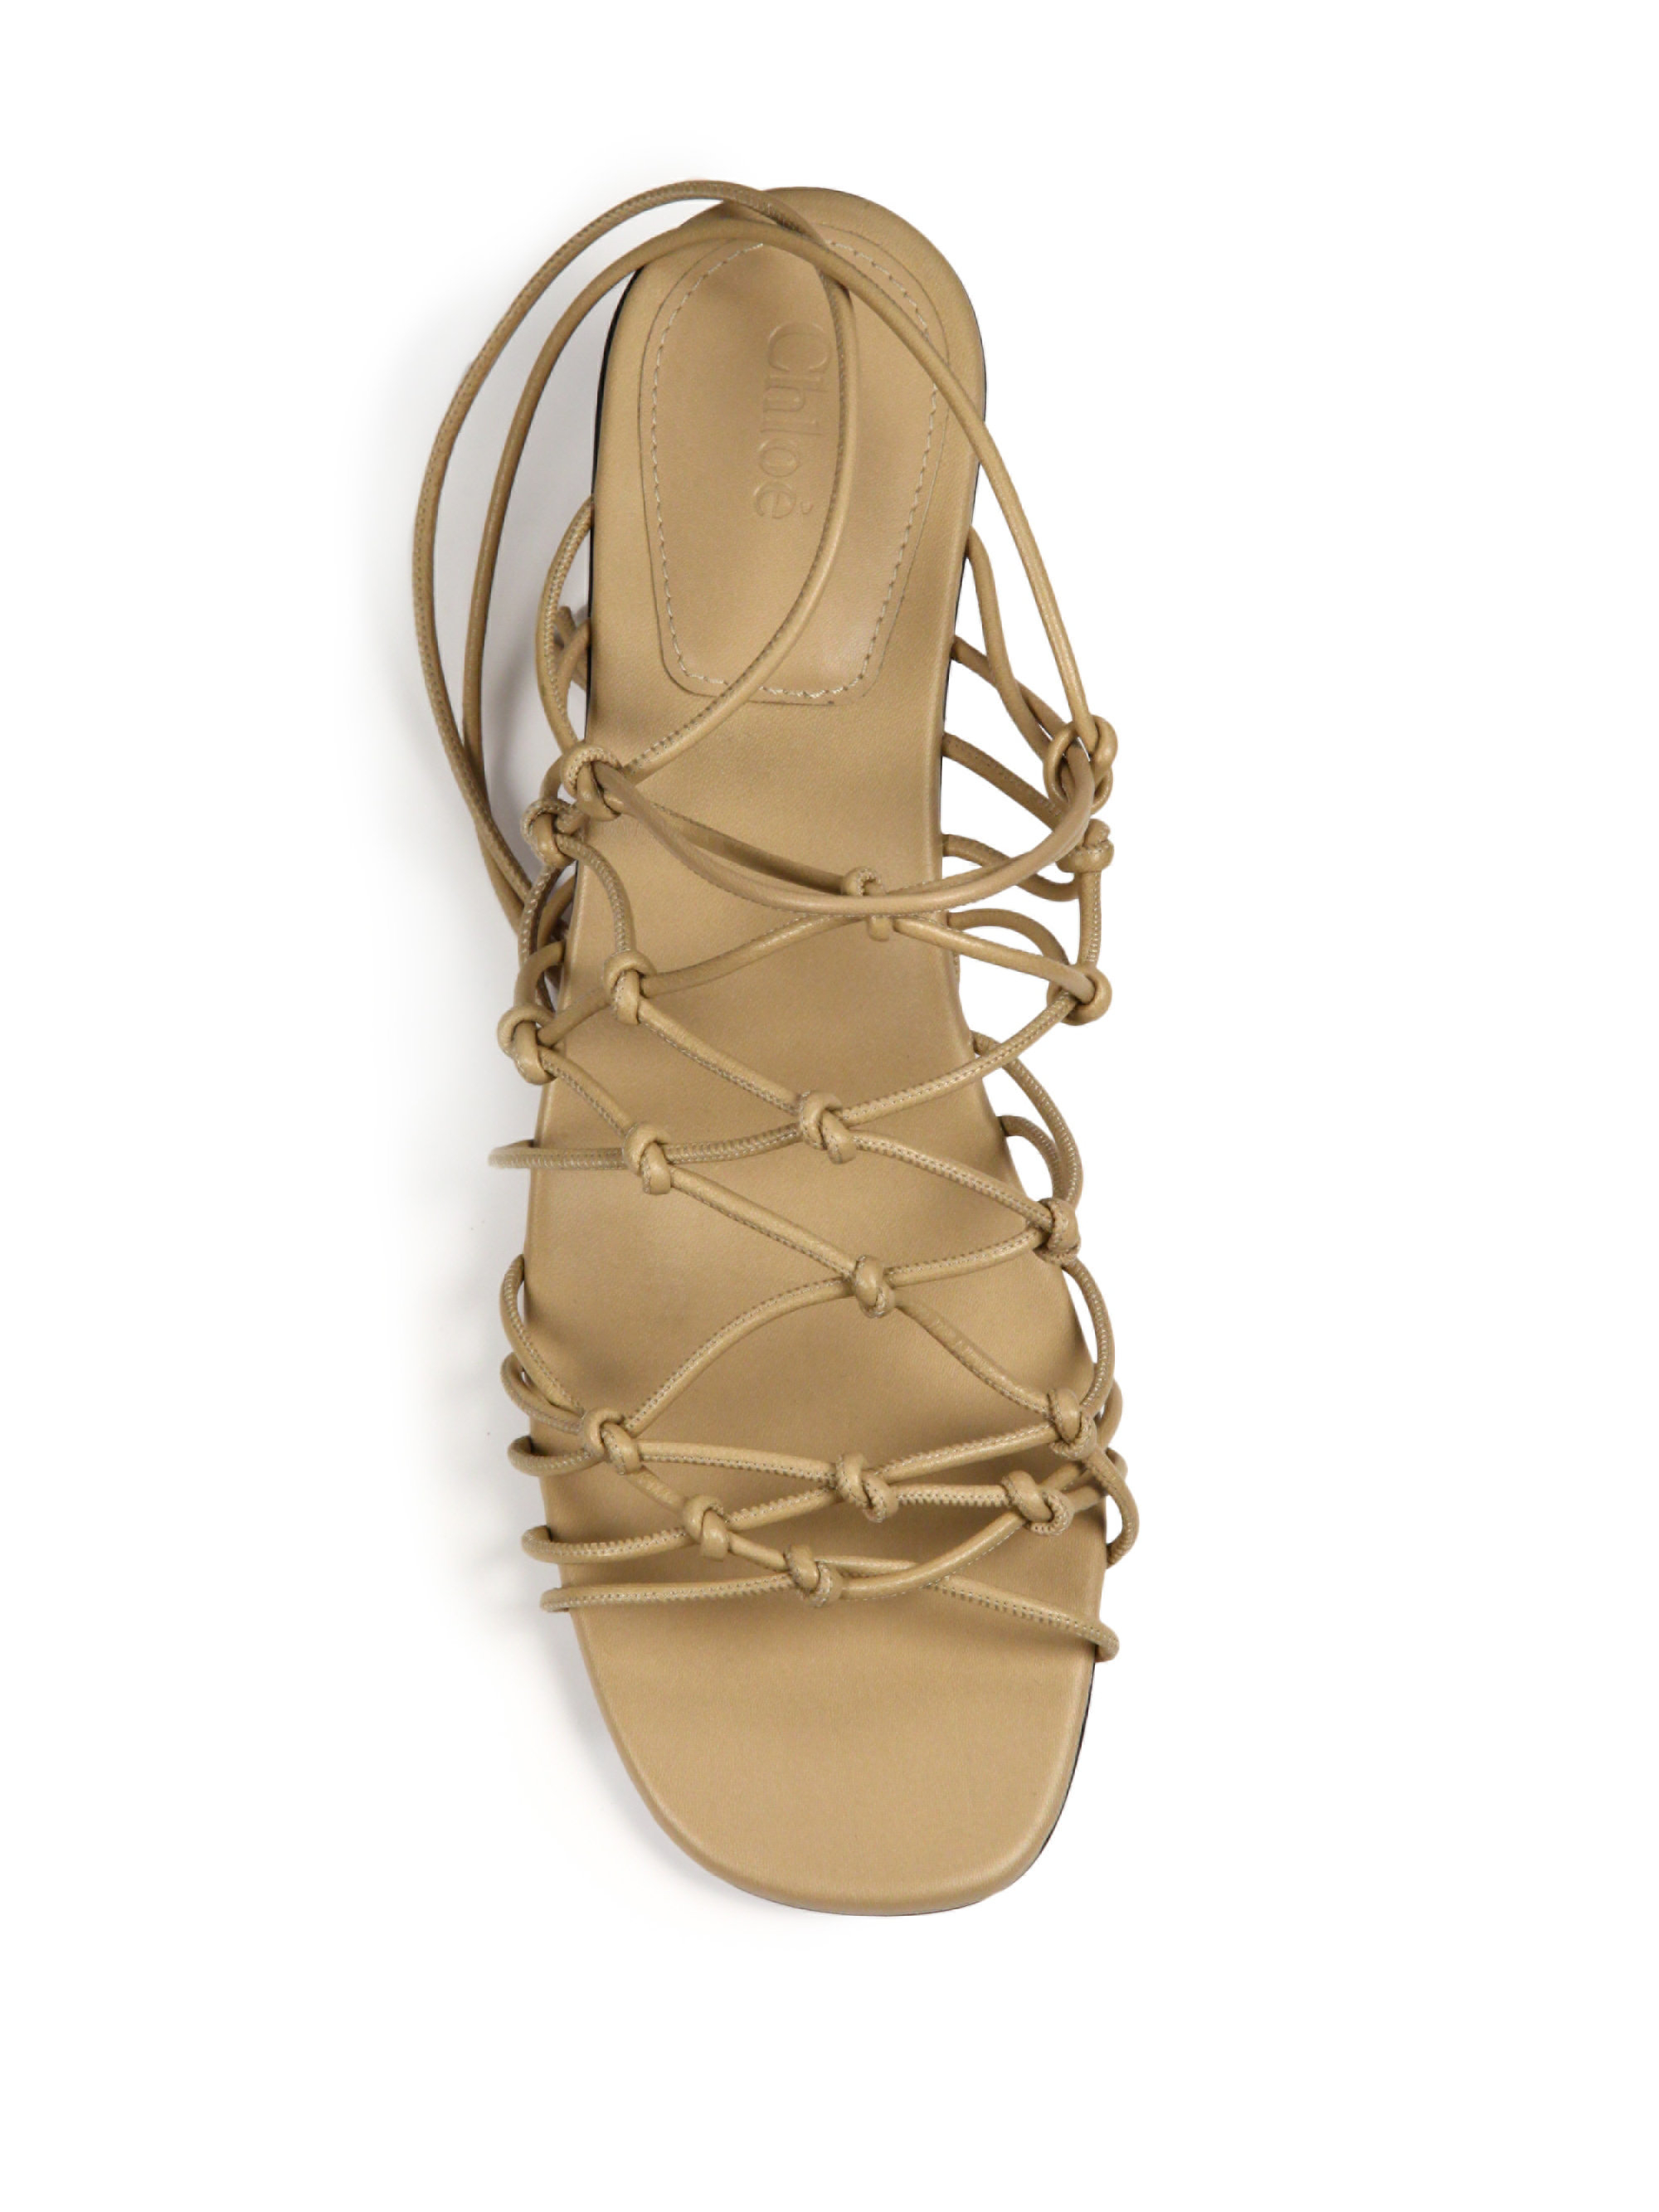 eb71d4b9209 Chloé Natural Knotted Leather Lace-up Block-heel Sandals